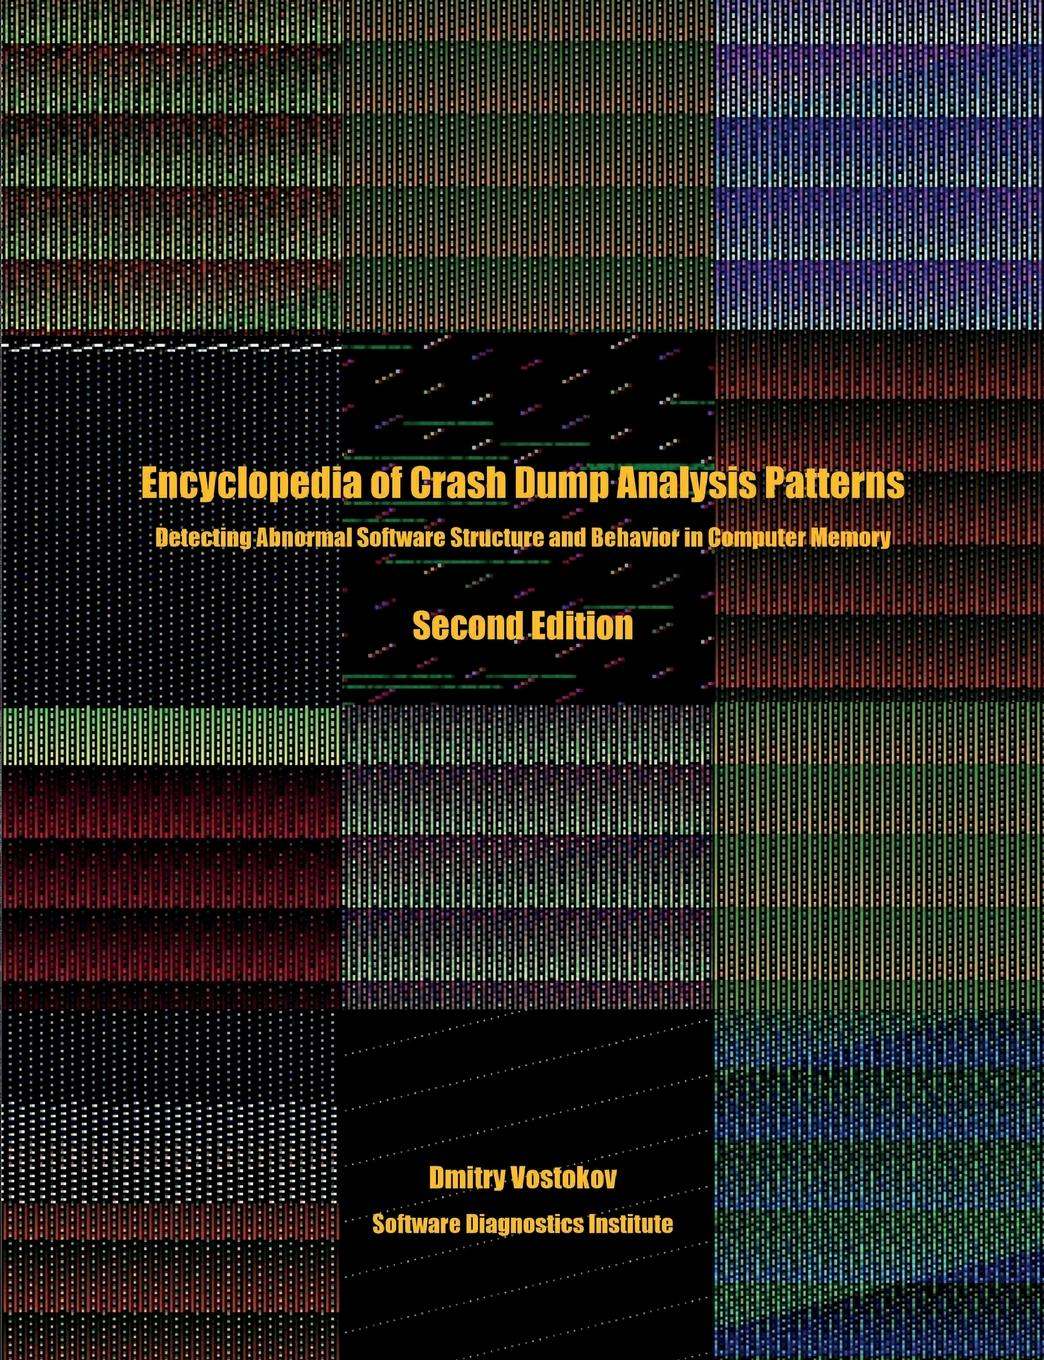 Dmitry Vostokov, Software Diagnostics Institute. Encyclopedia of Crash Dump Analysis Patterns. Detecting Abnormal Software Structure and Behavior in Computer Memory, Second Edition